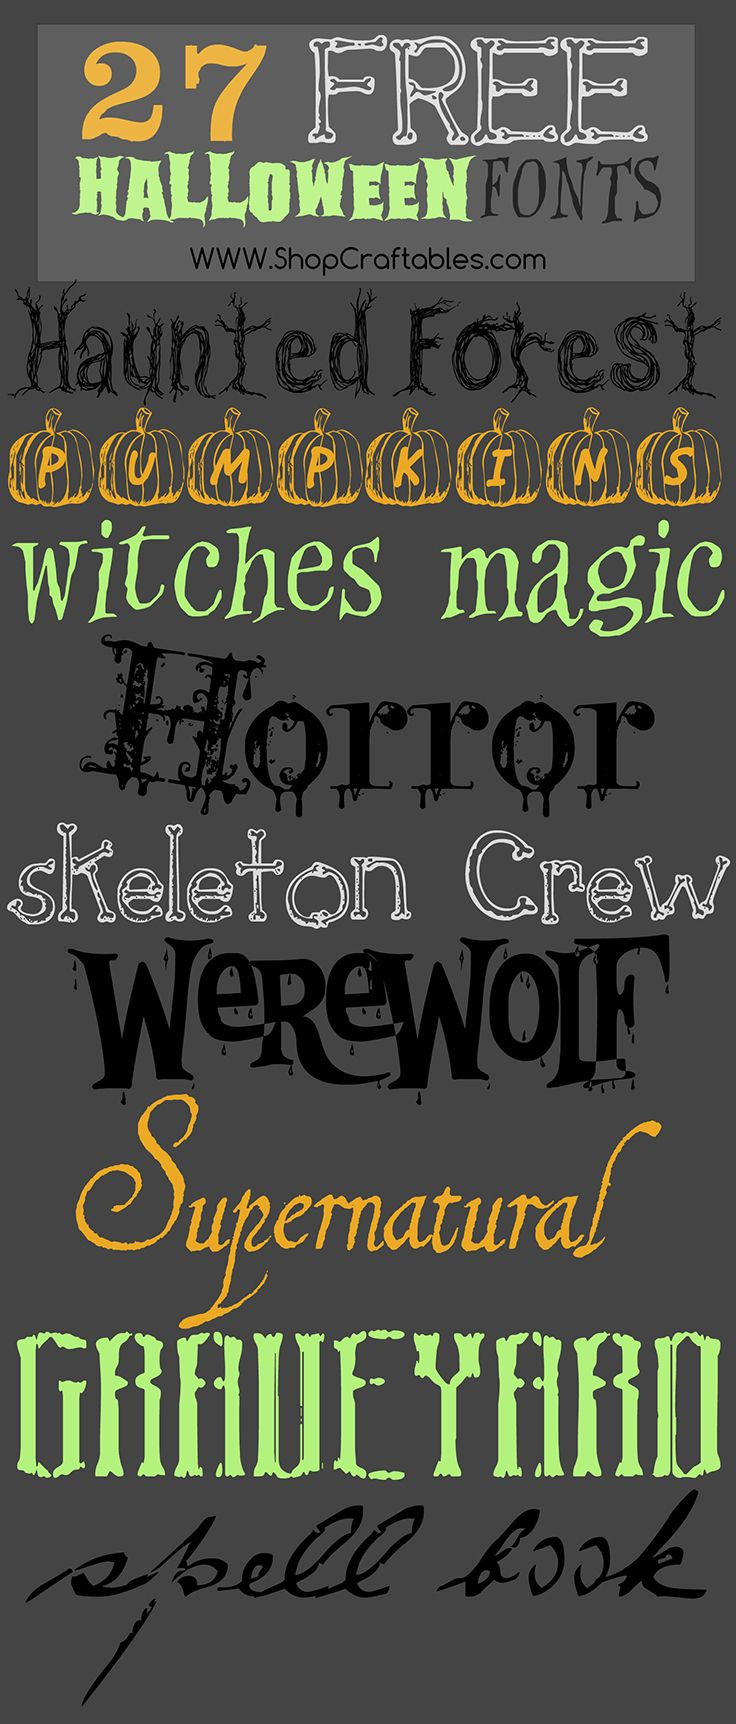 Free Halloween fonts for October!